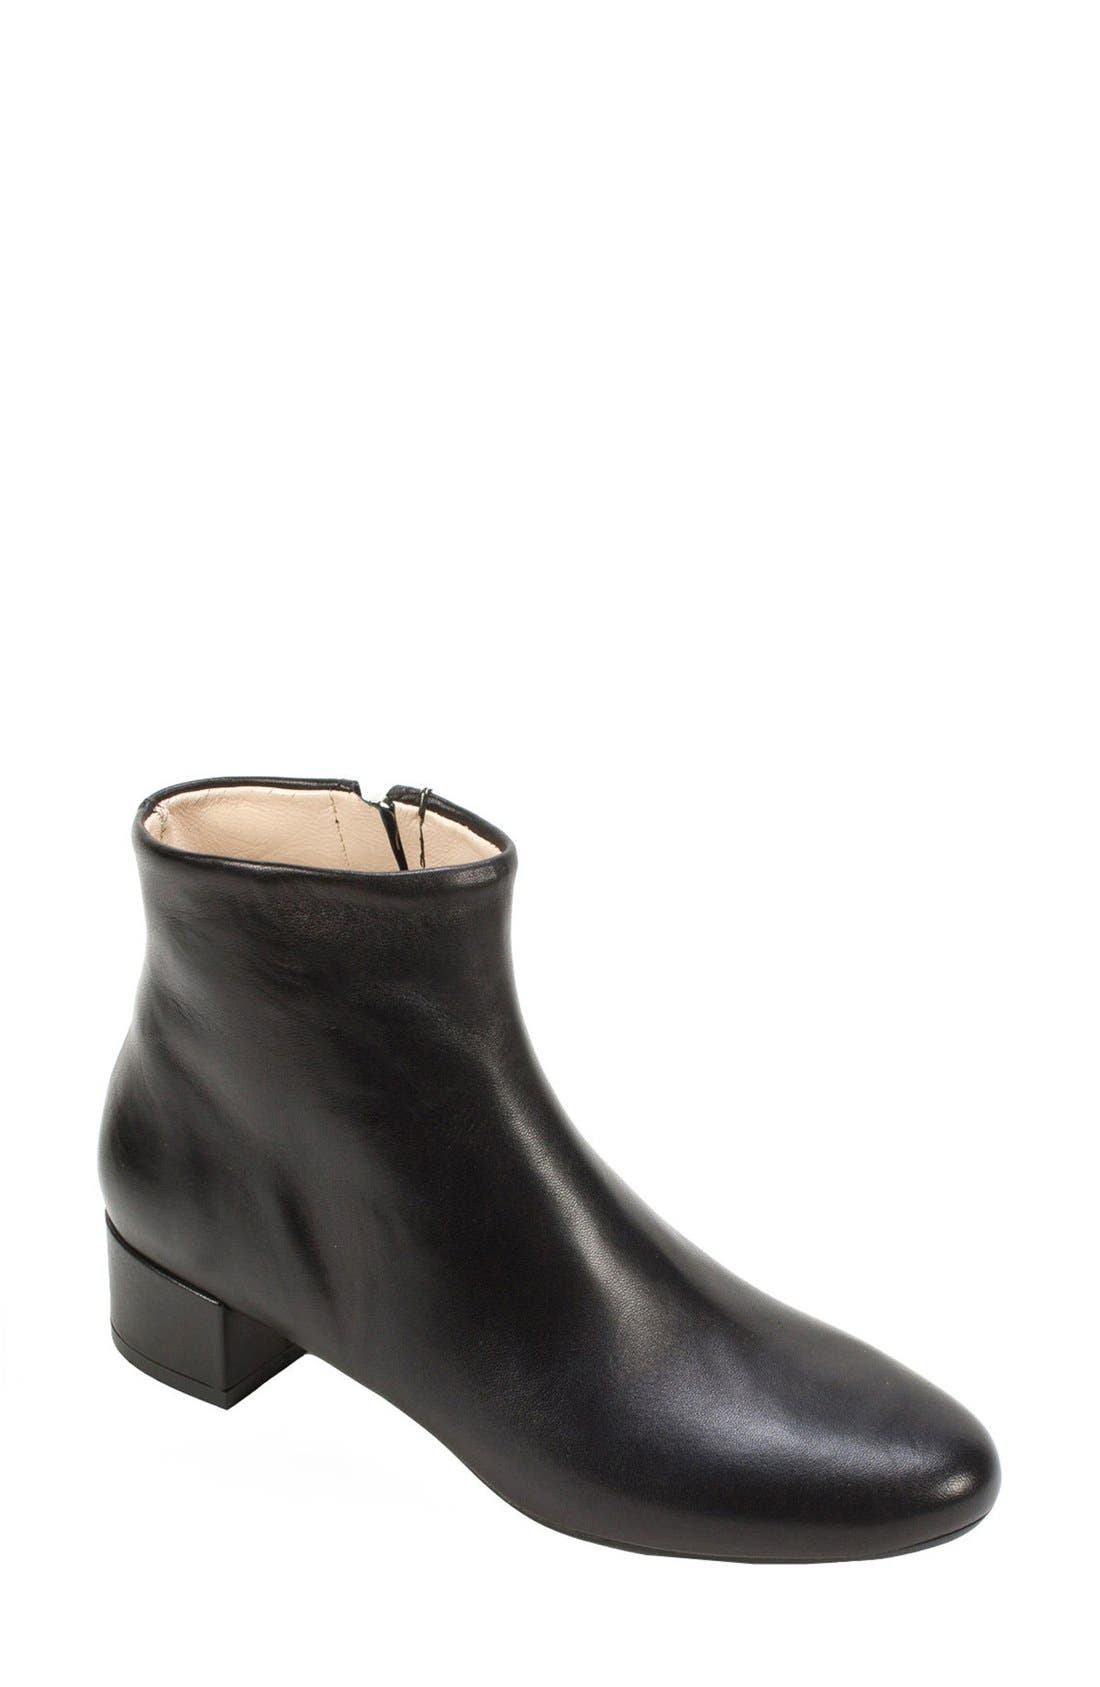 Main Image - Summit Jordie Block Heel Bootie (Women)